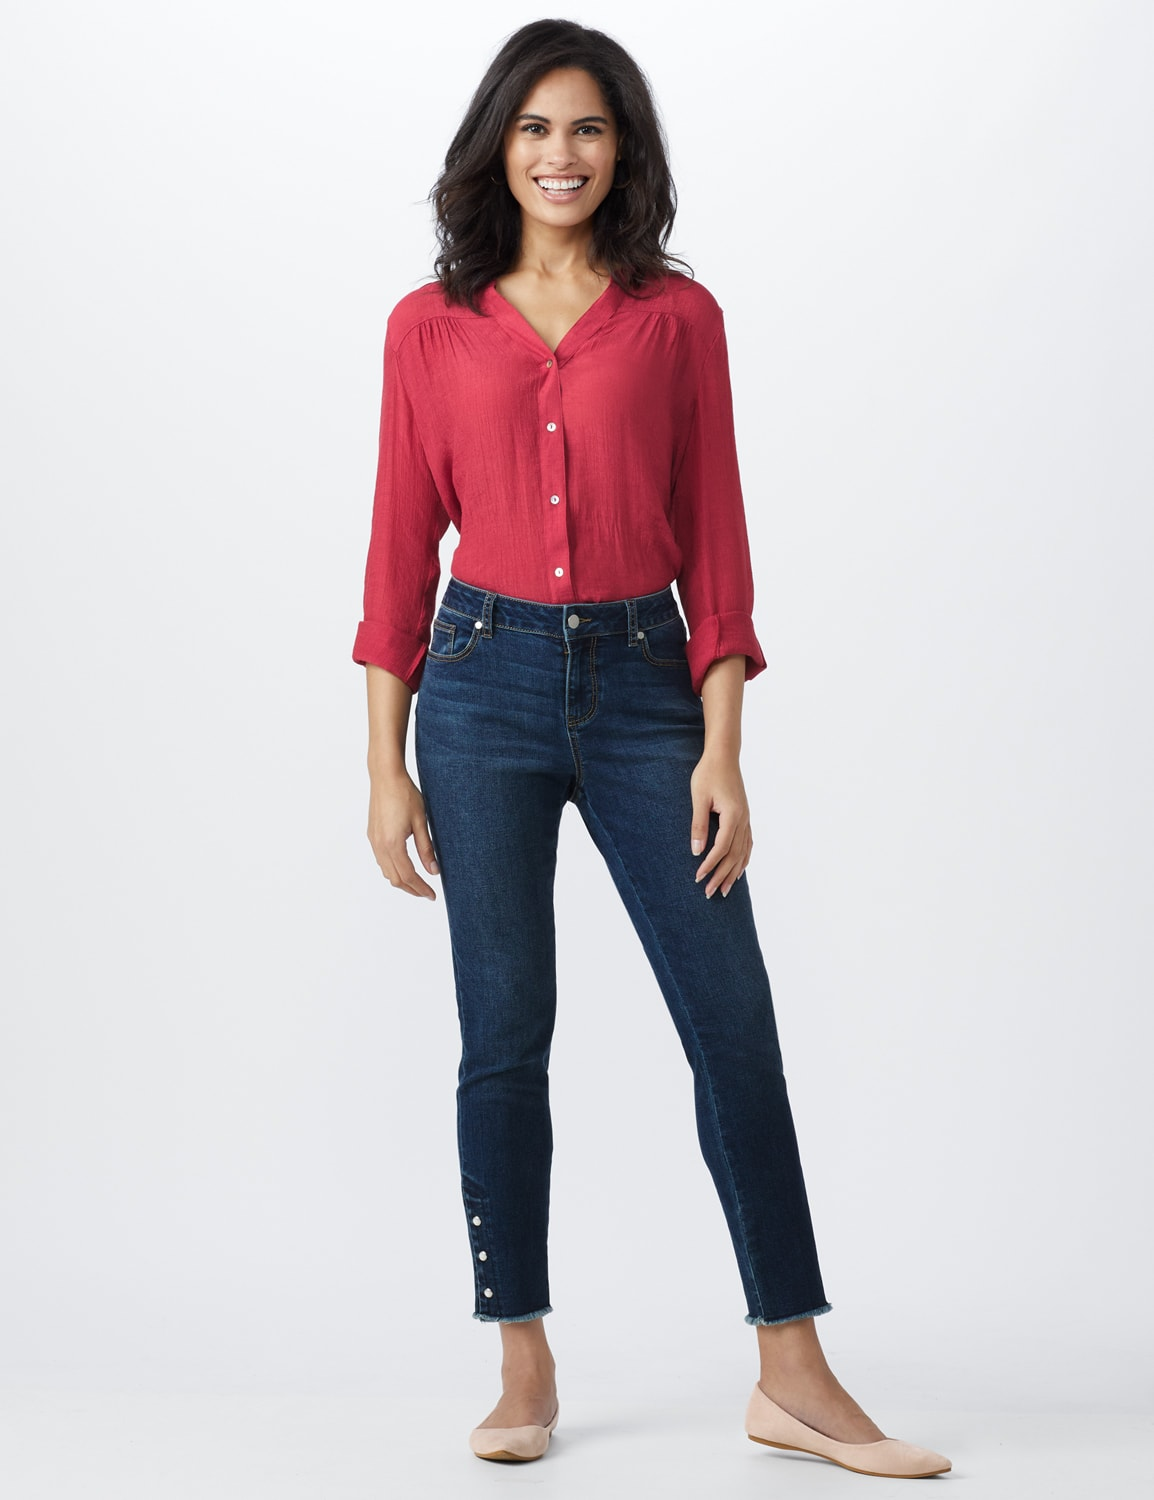 Westport Signature 5 Pocket Skinny Ankle Jean With Snap Button At Ankle - Misses - Dark Wash - Front